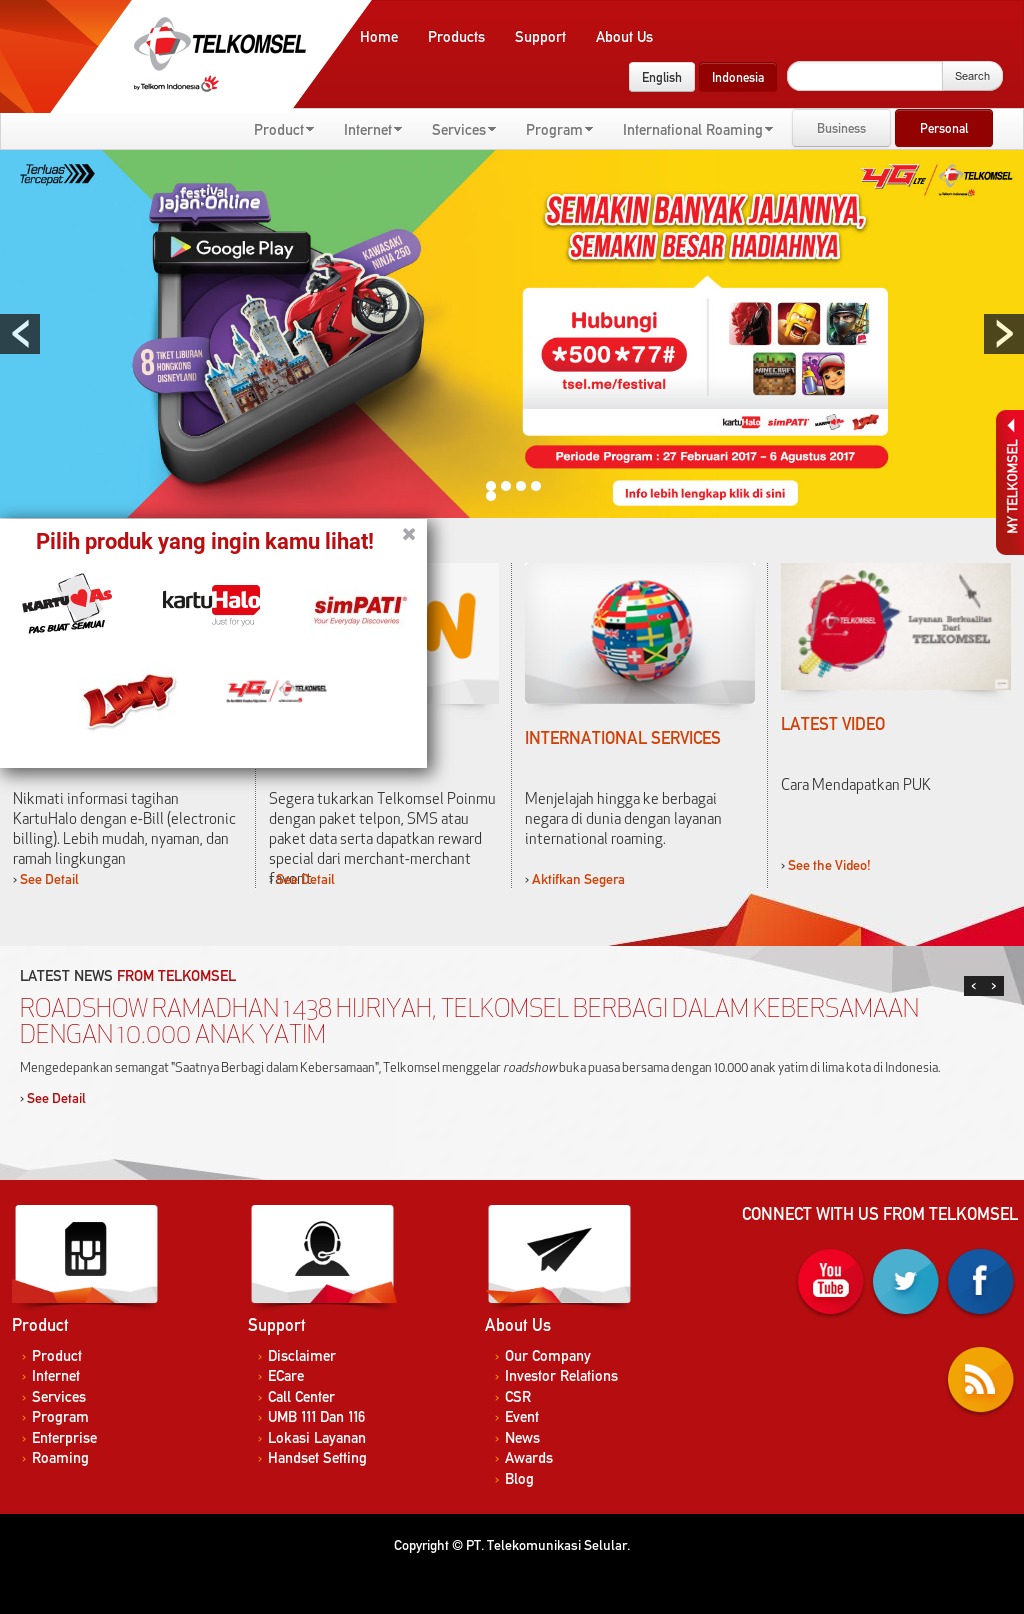 Telkomsel Competitors, Revenue and Employees - Owler Company